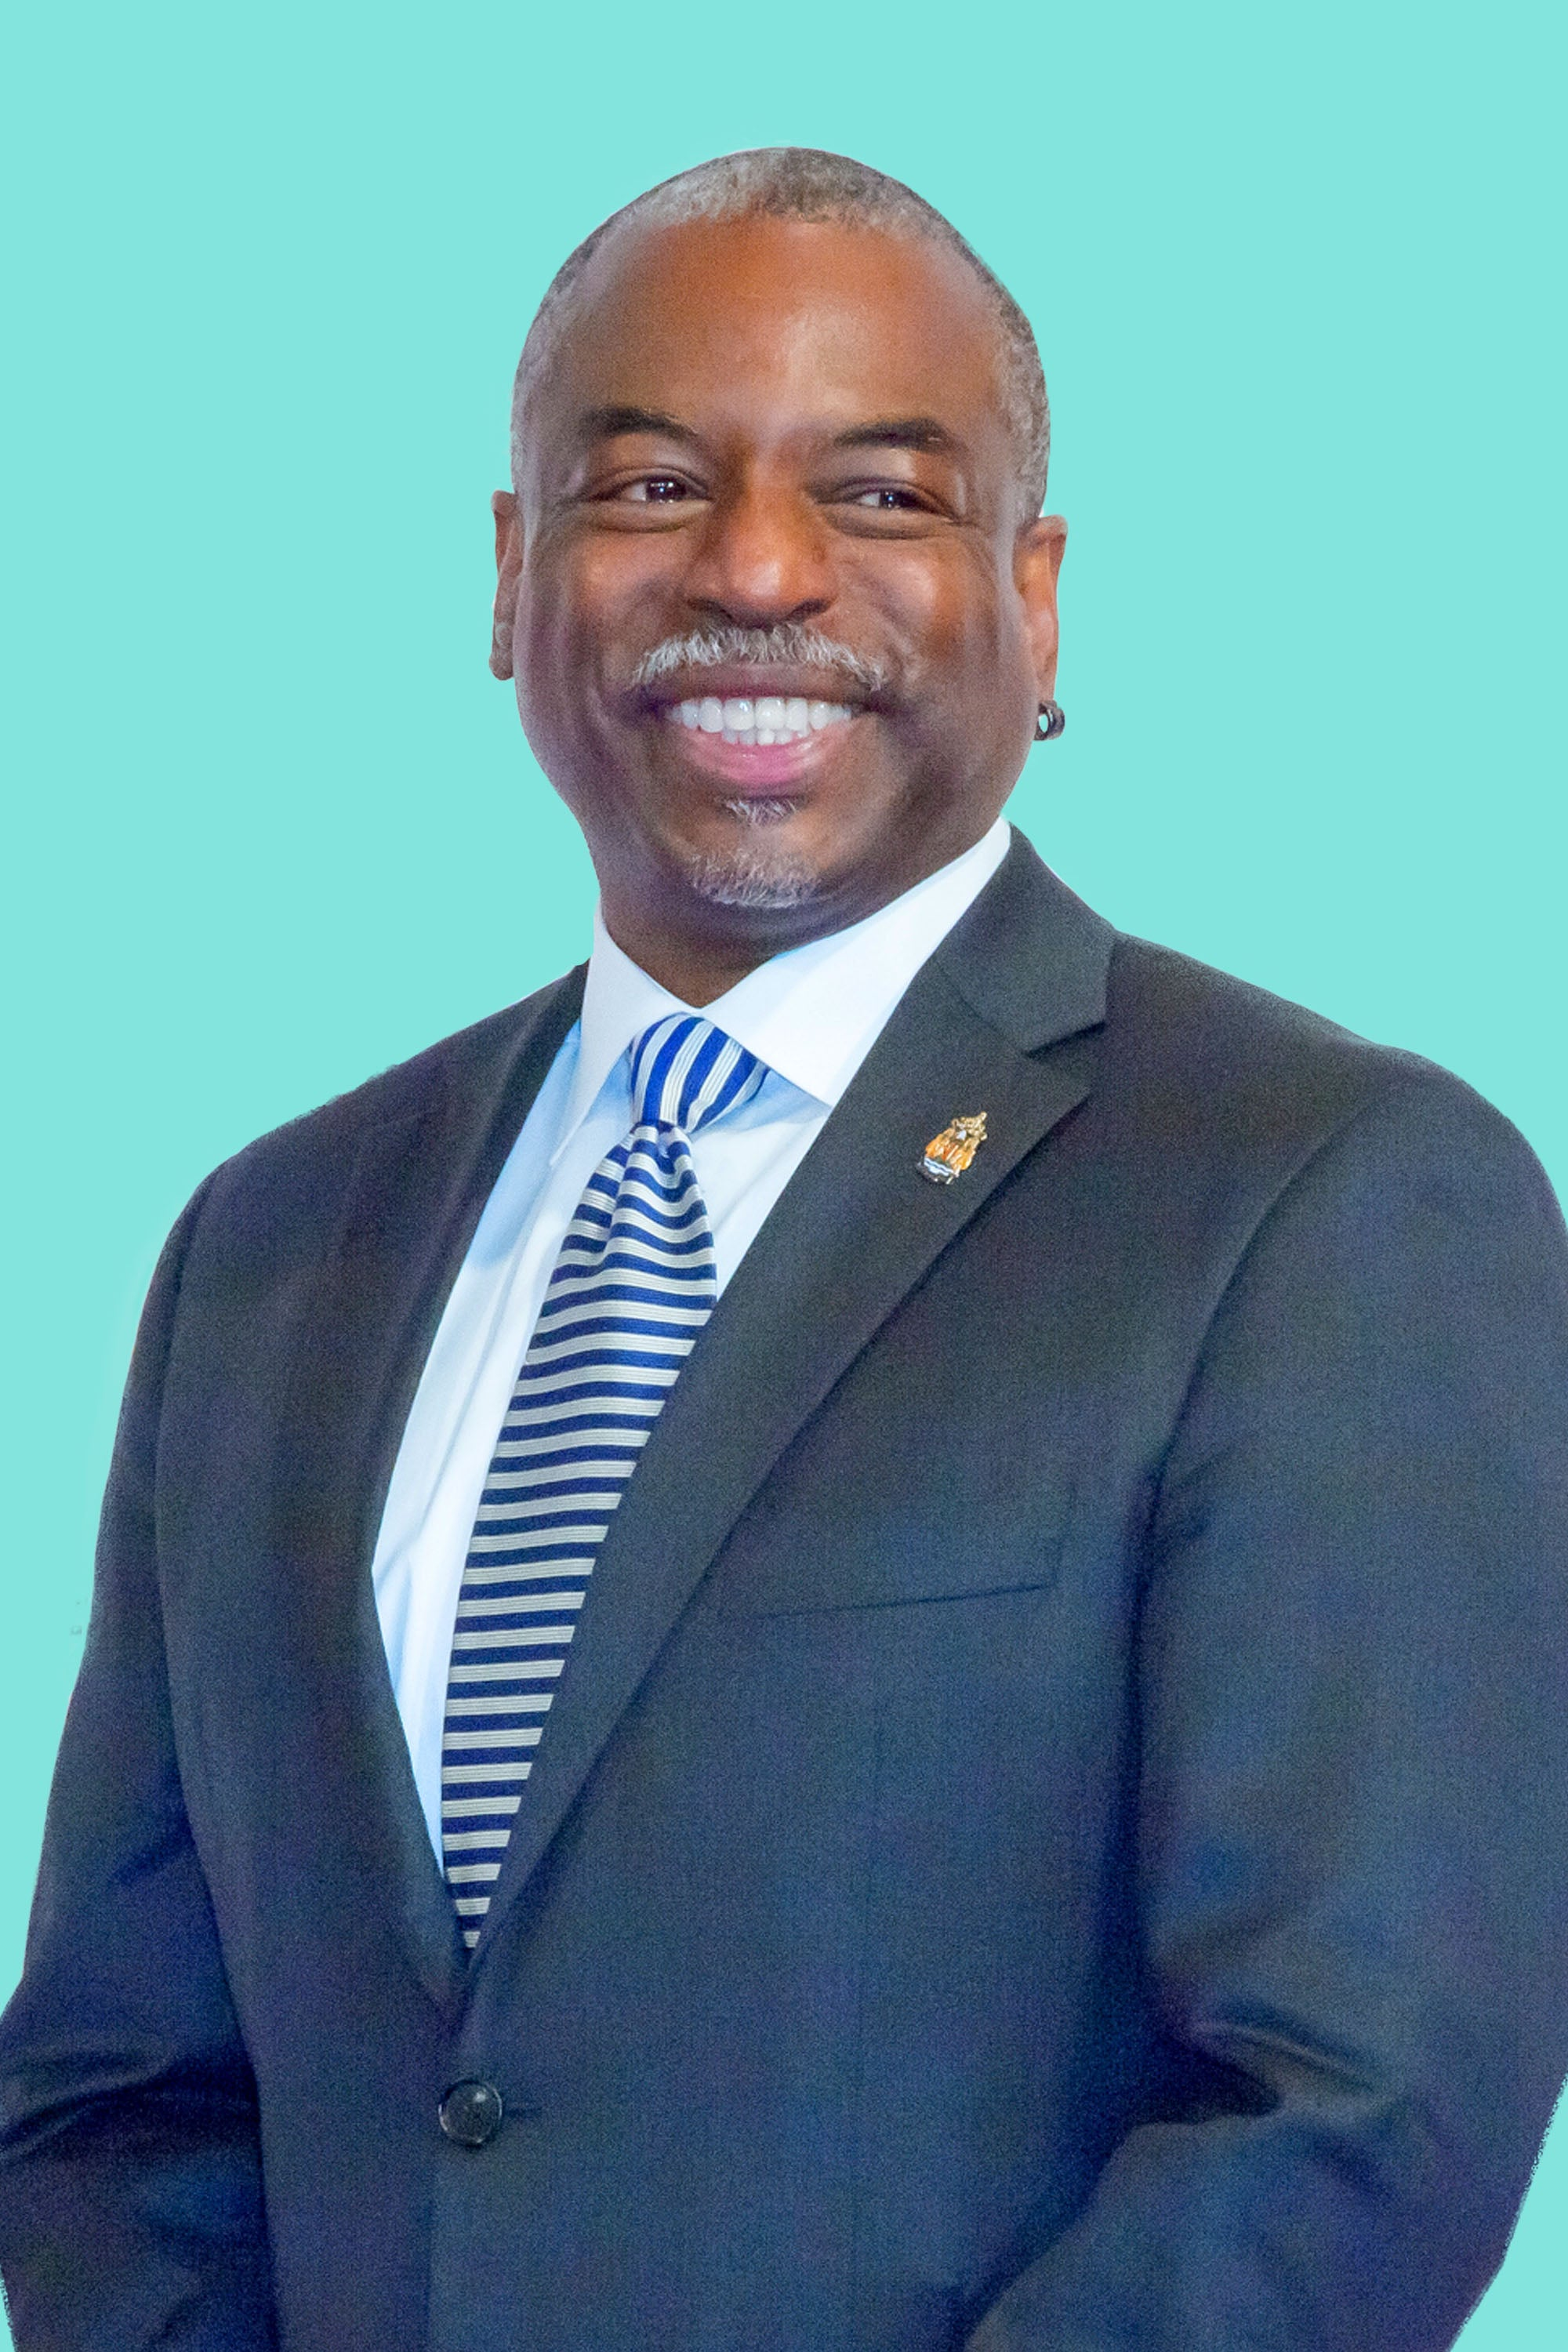 LeVar Burton Is Being Sued For Reading Rainbow Copyright Dispute